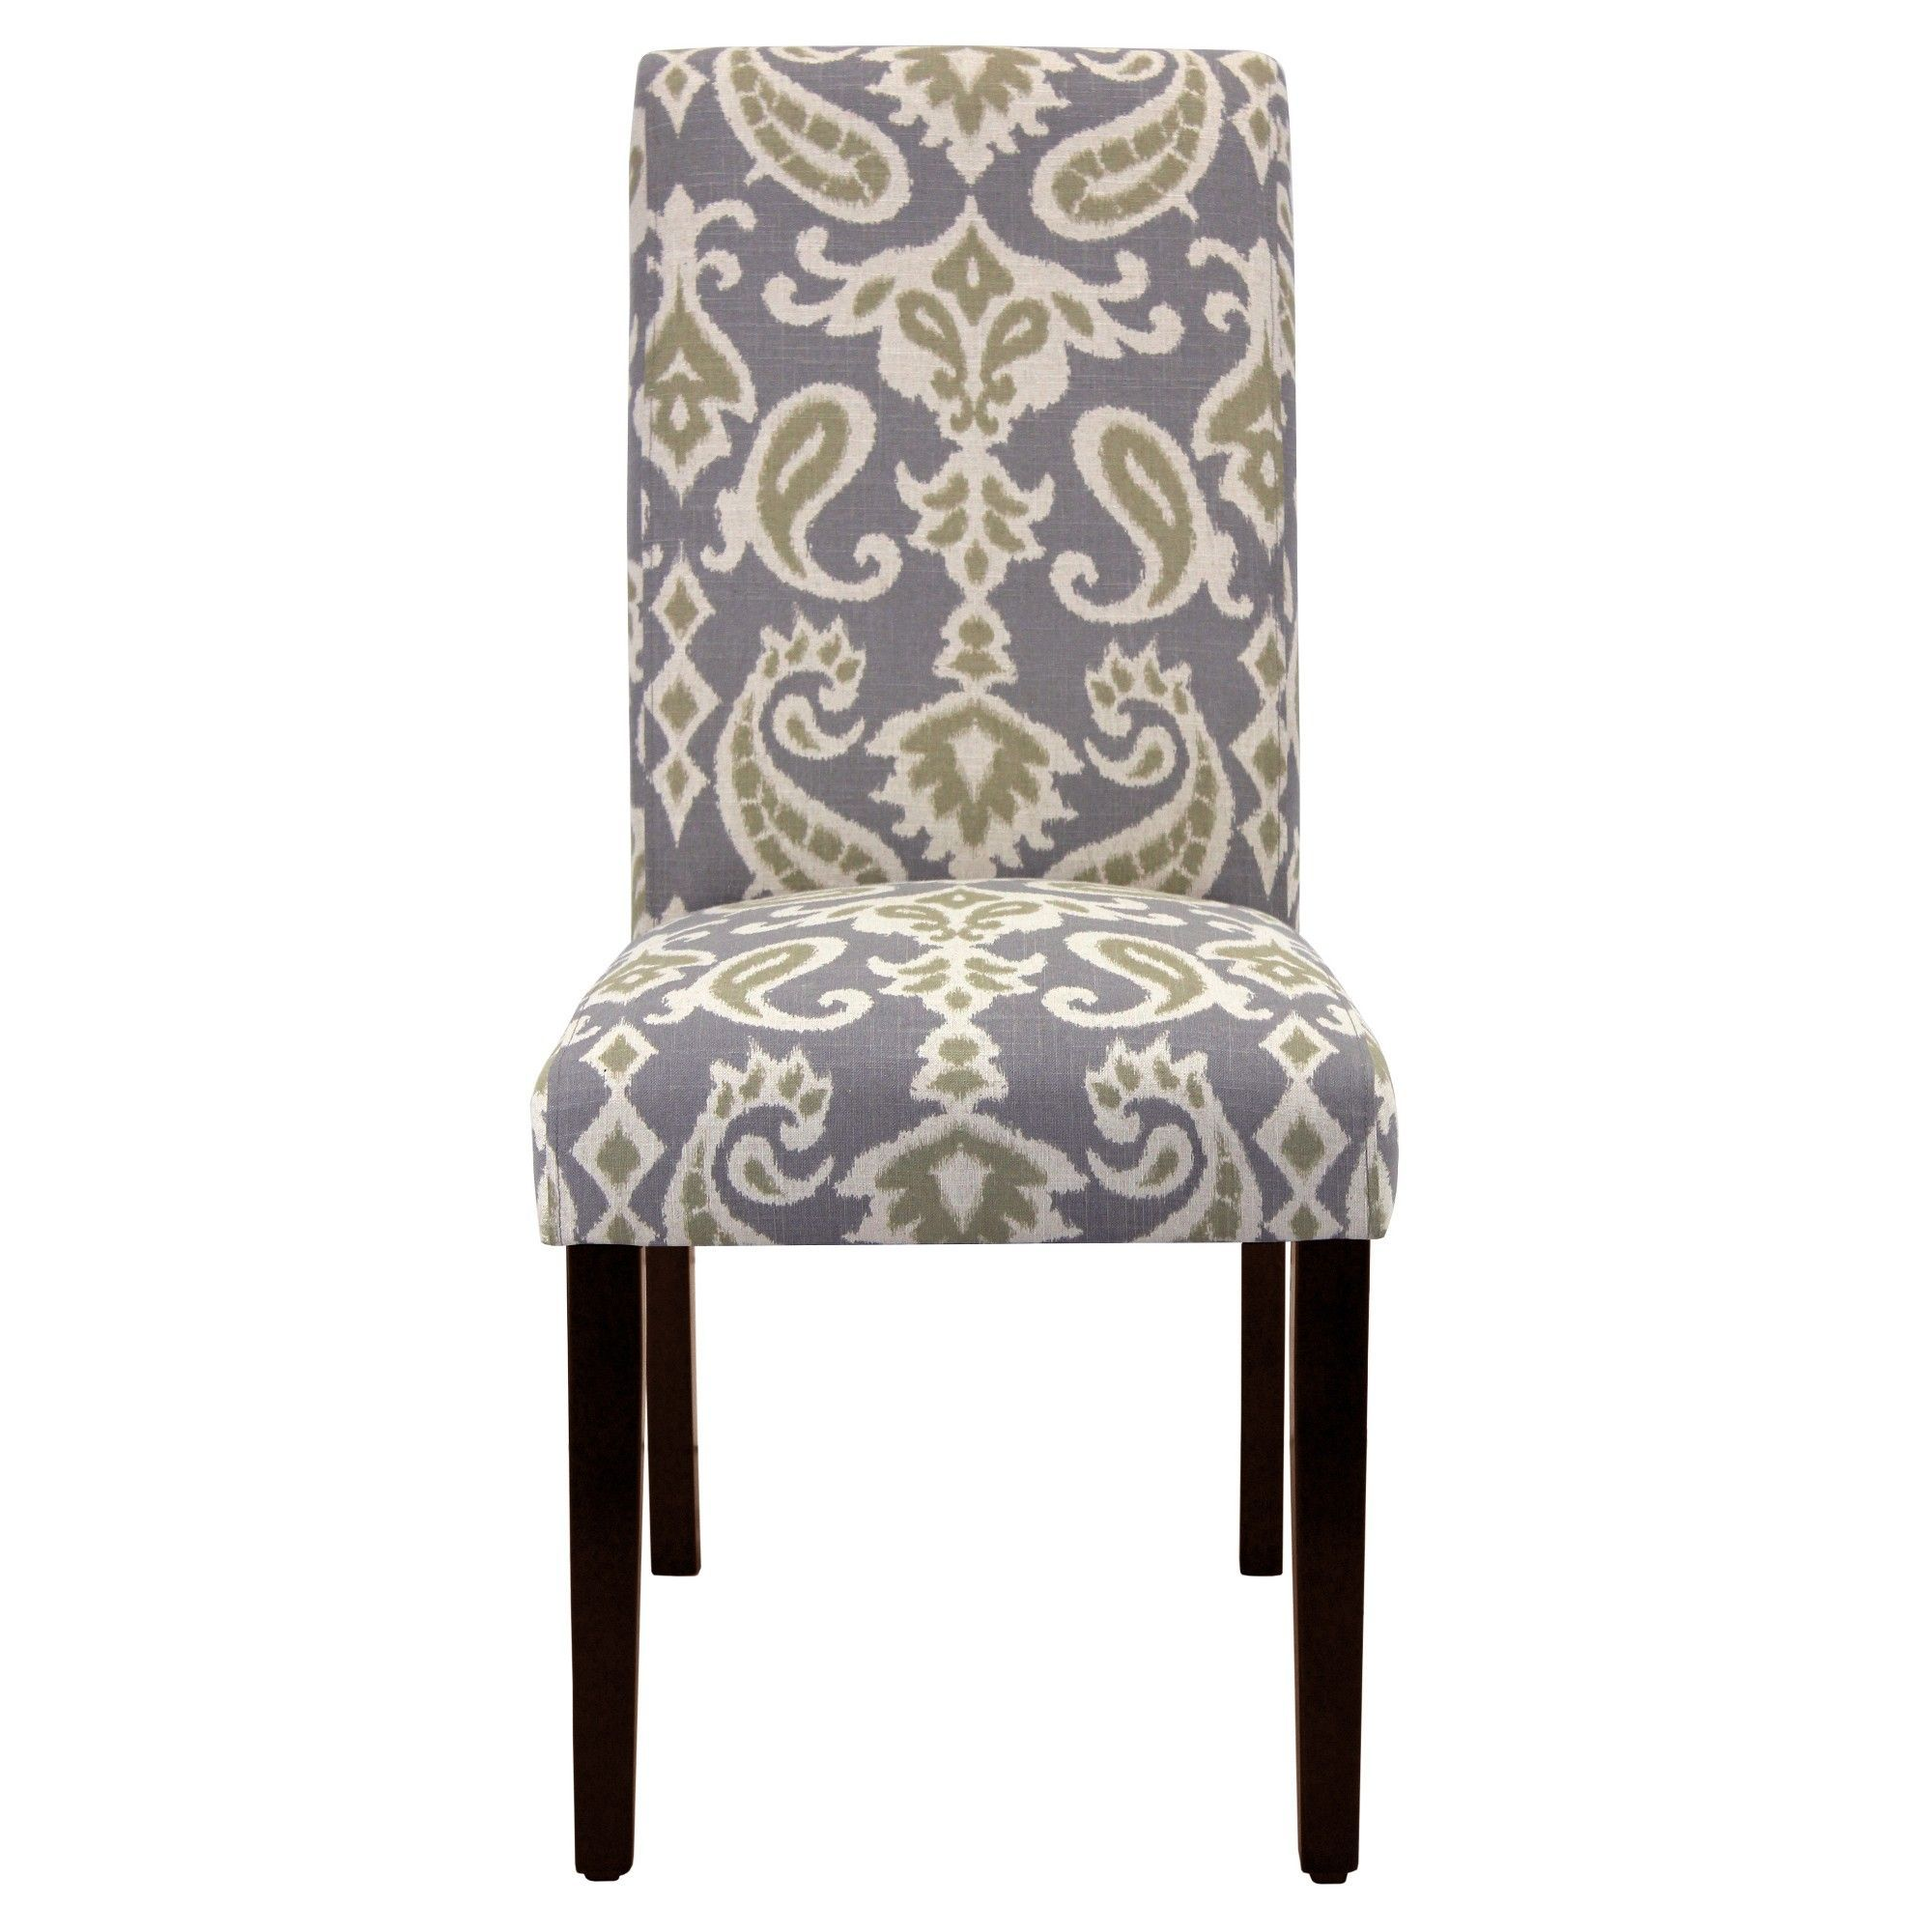 Brilliant Avington Print Accent Dining Chair Enchanted Mineral Short Links Chair Design For Home Short Linksinfo